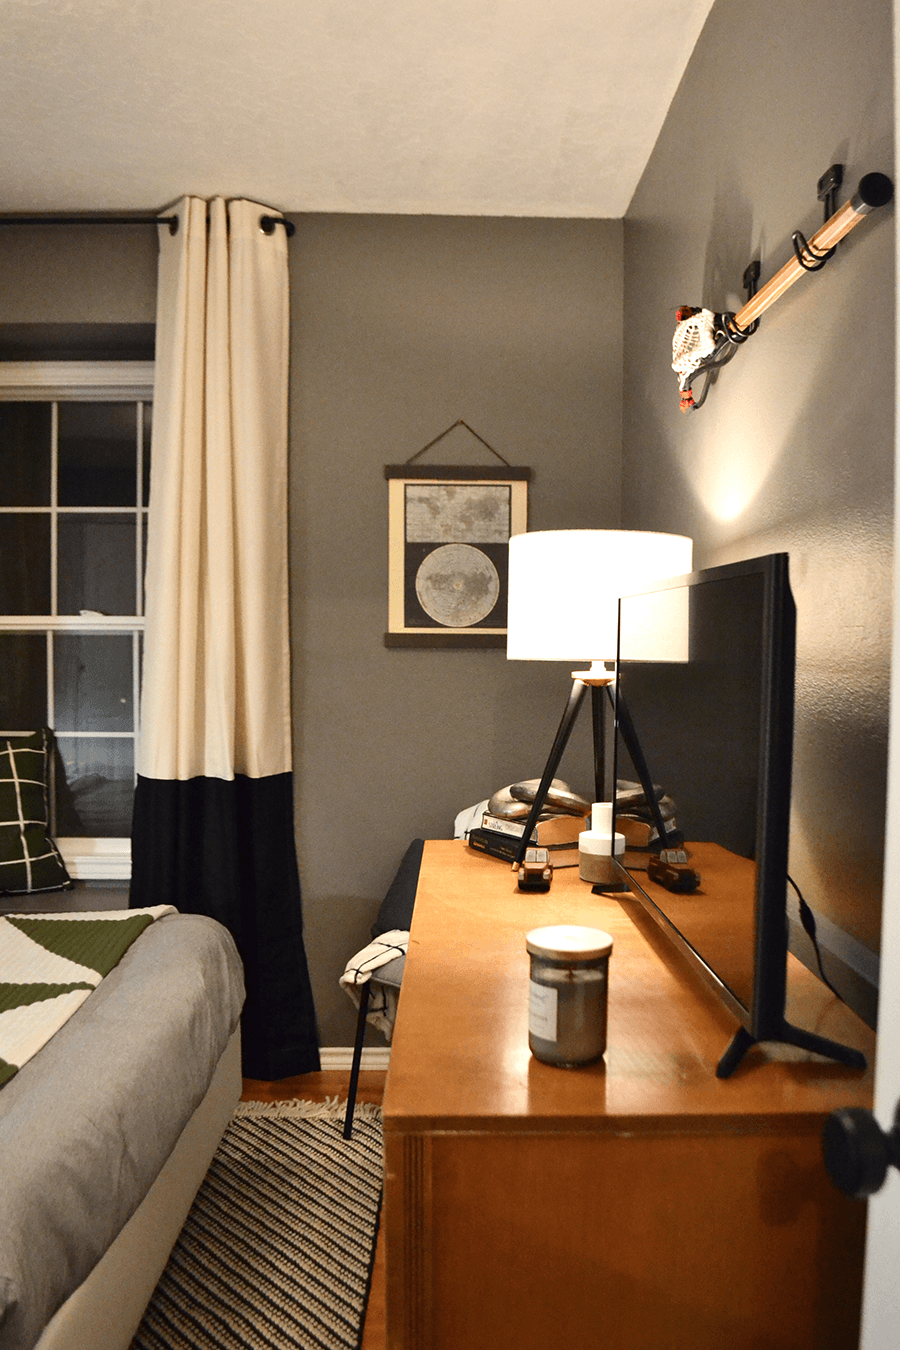 teen boys bedroom, comfy, cozy bedroom, bedroom makeover, boutique hotel room, neutral bedroom, moody bedroom, cozy bedroom corner, tripod lamp, hearth and hand, teen boy